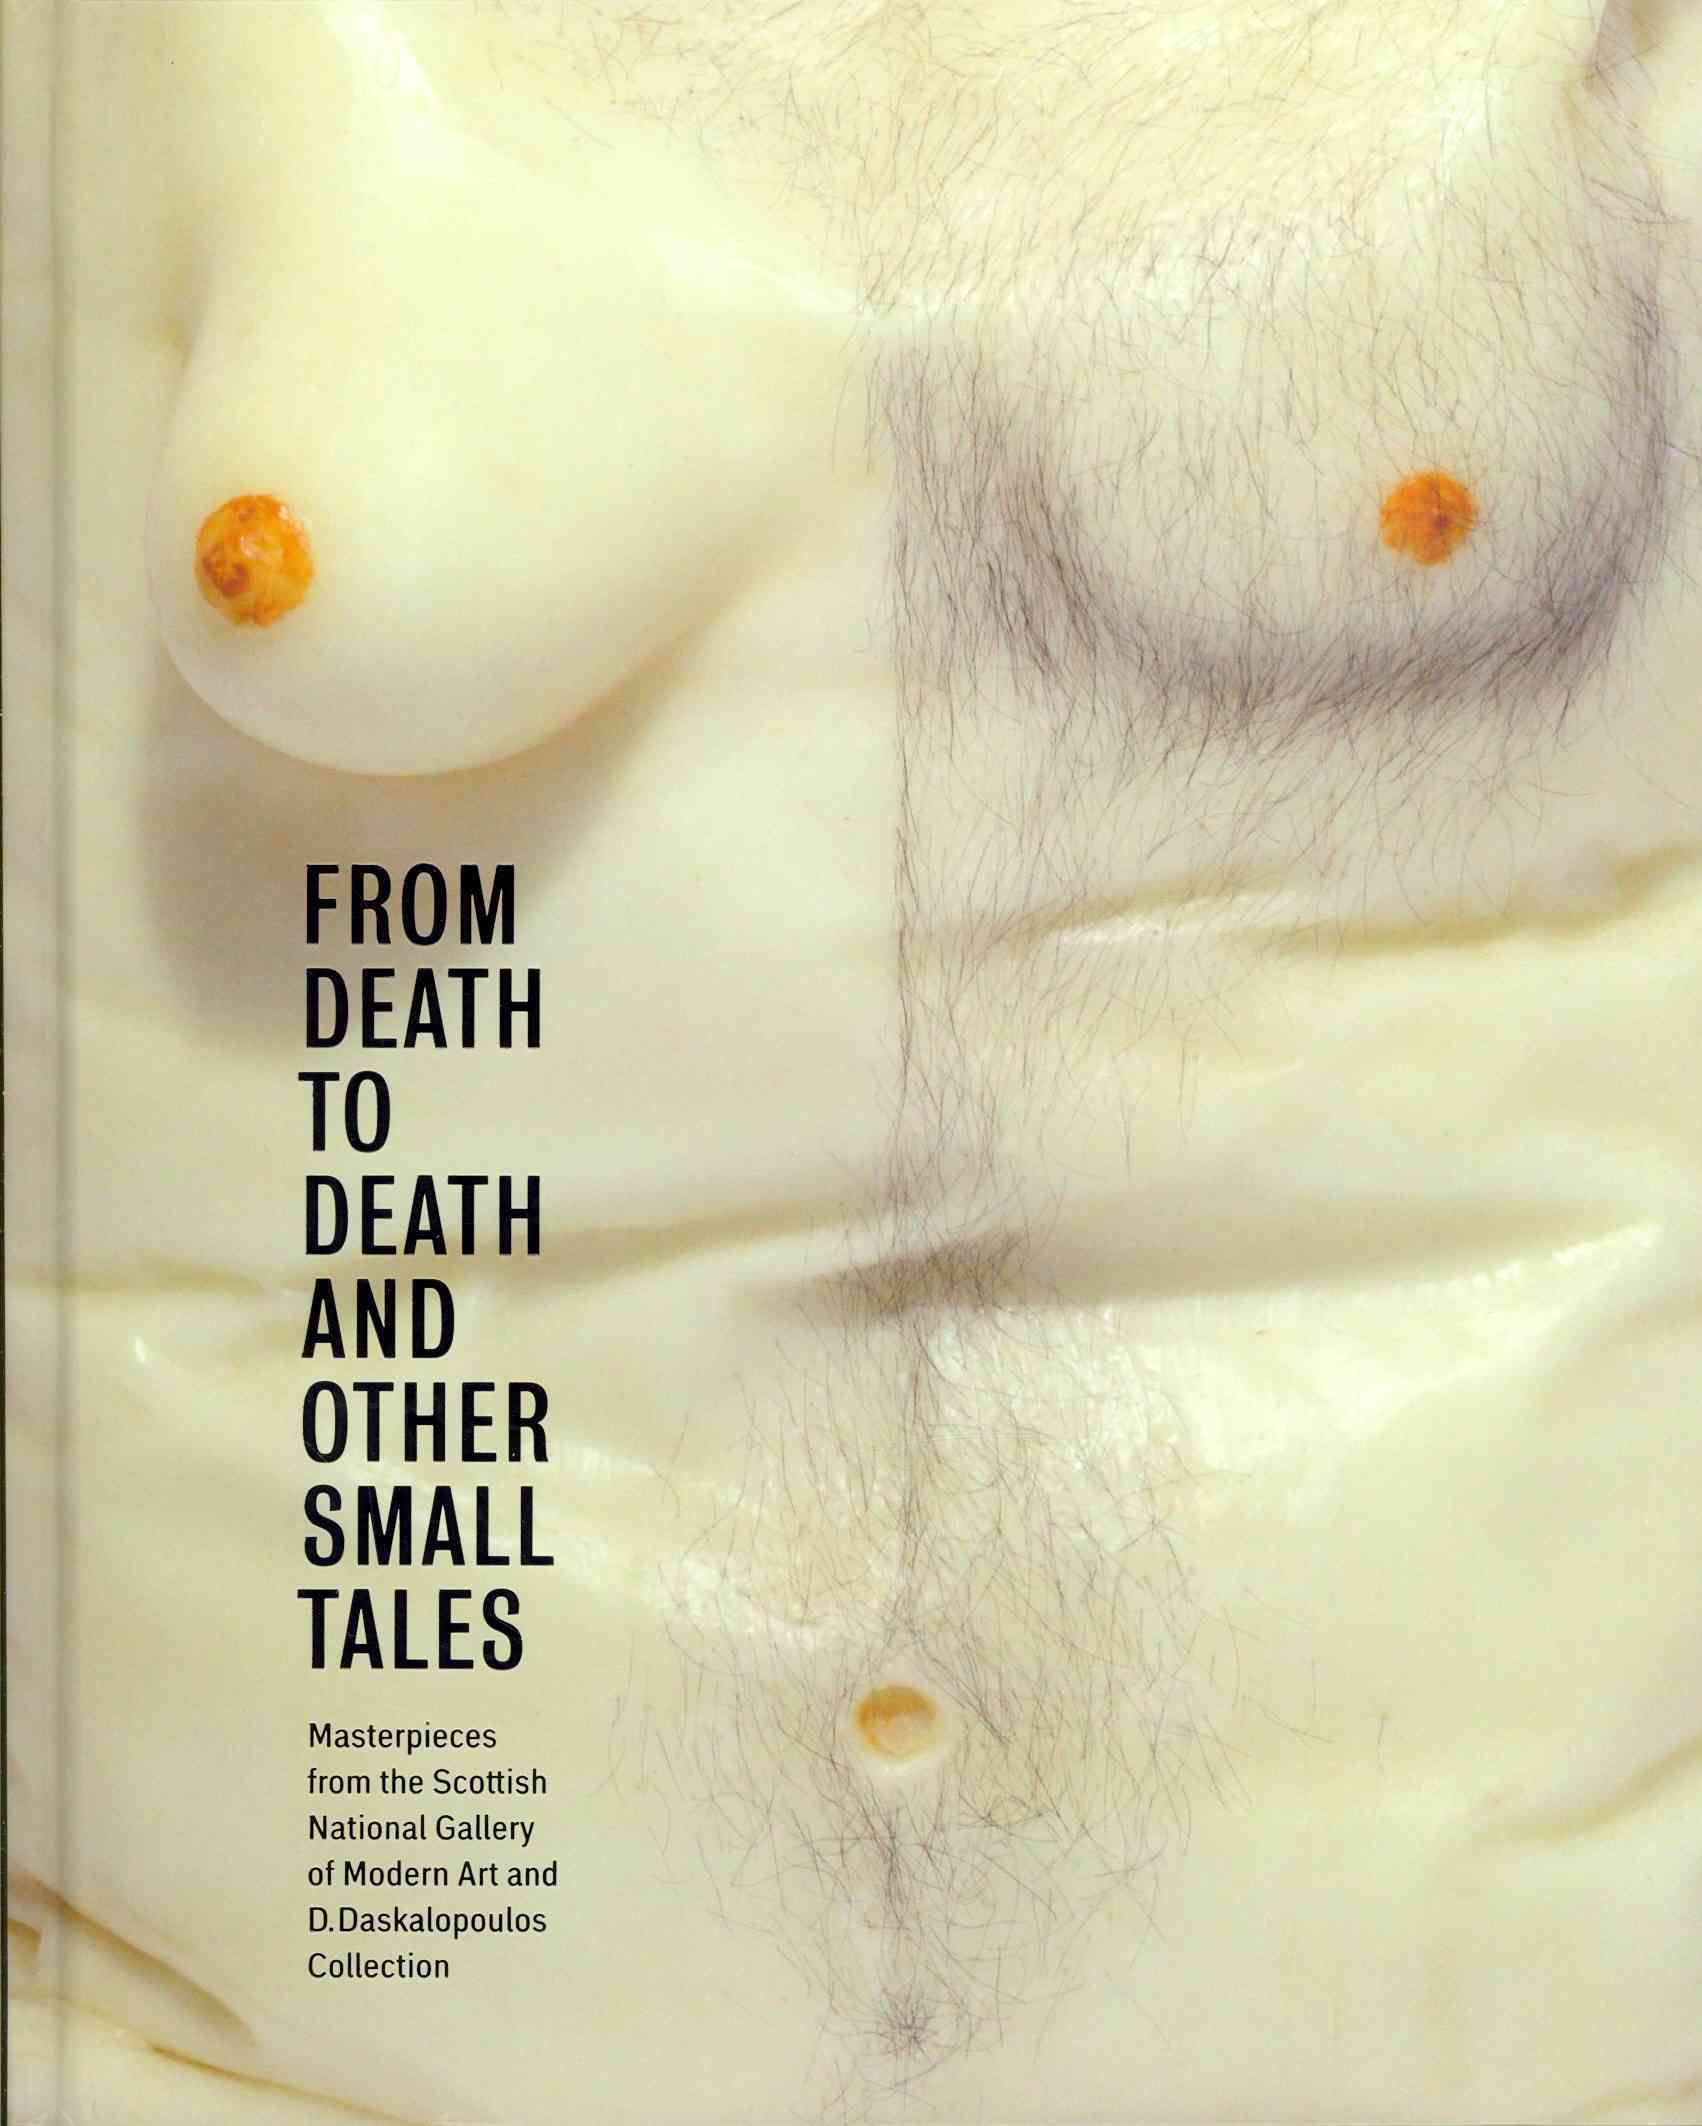 From Death to Death and Other Small Tales: Masterpieces from the Scottish National Gallery of Modern Art and the ... (Hardcover)